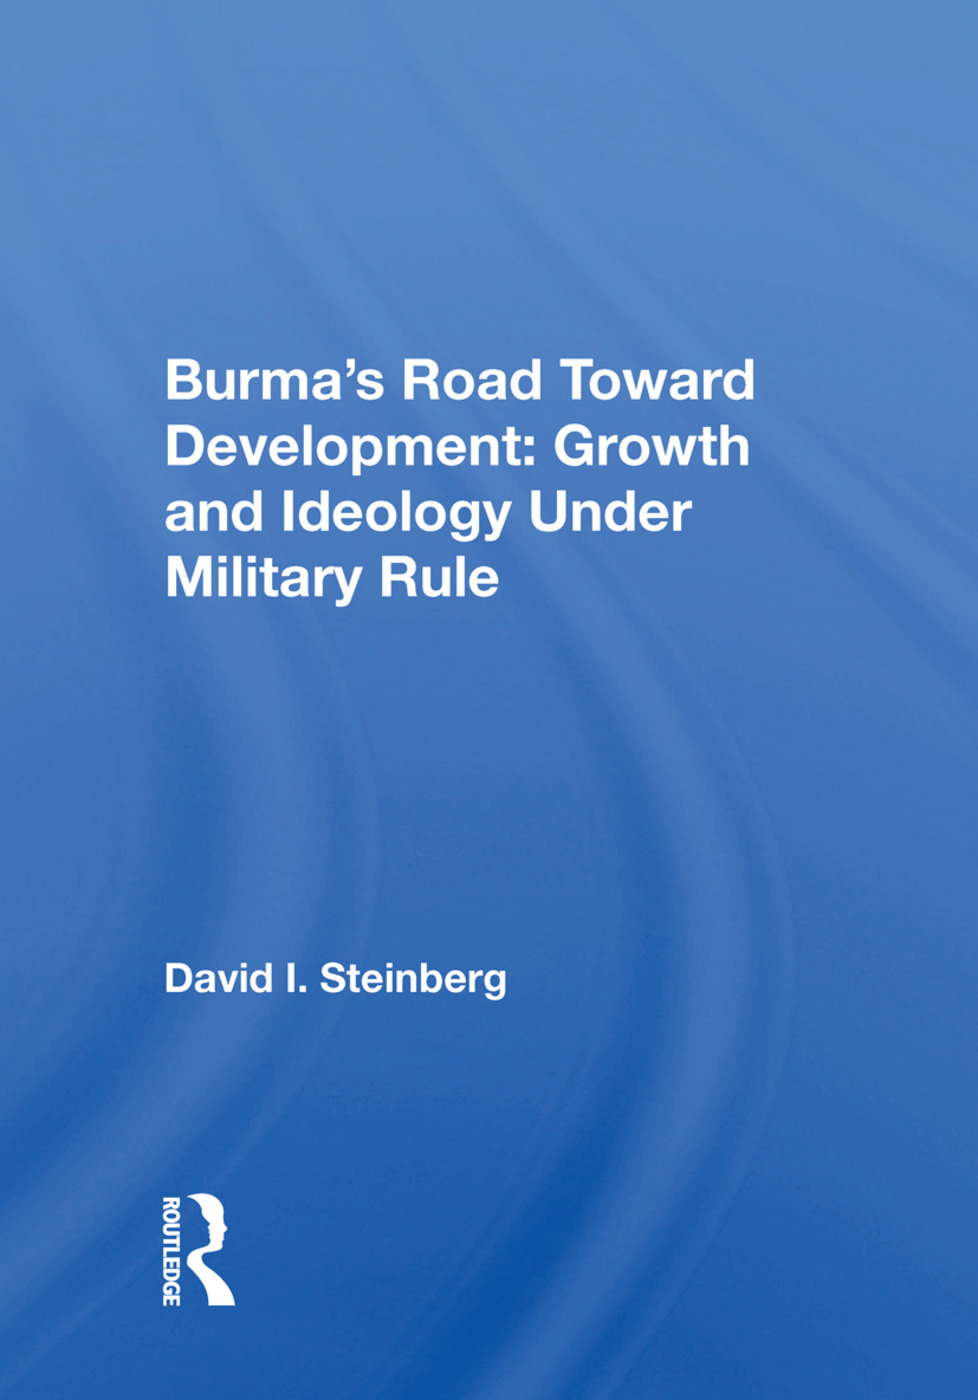 Burma's Road Toward Development: Growth and Ideology Under Military Rule